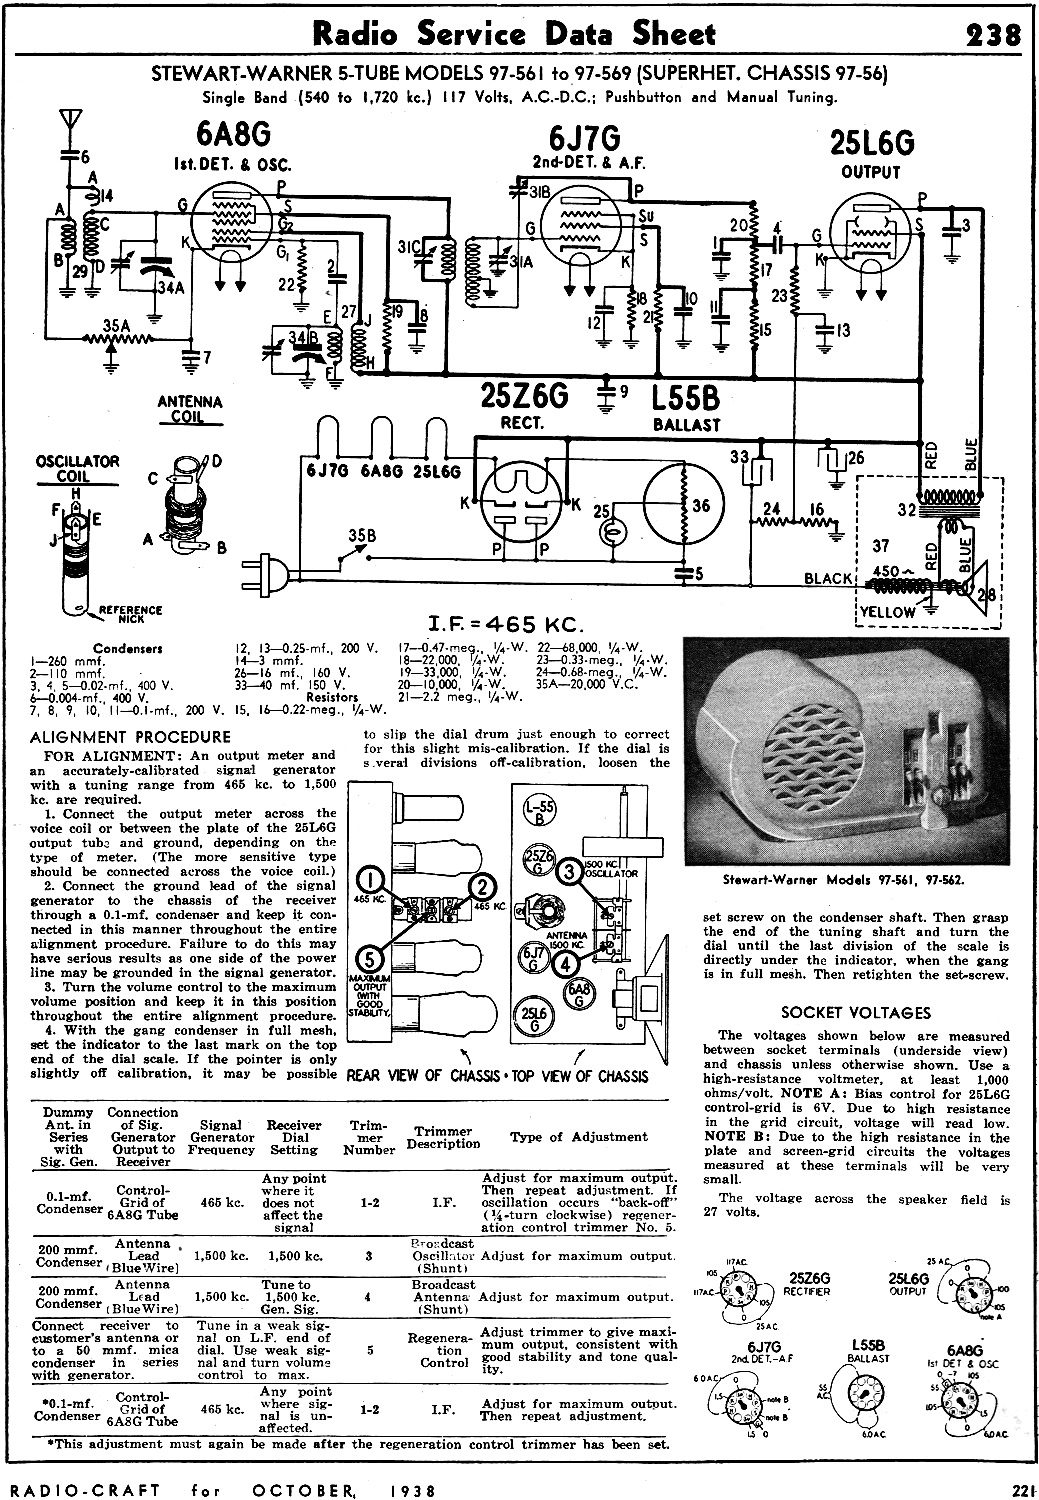 Stewartwarner 5tube Models 97561 To 97569 Superhet Chassis 97. Stewartwarner 5tube Models 97561 To 97569 Superhet Chassis 9756 Radio Service Data Sheet. Wiring. Zenith Tube Radio Schematics 1938 At Scoala.co